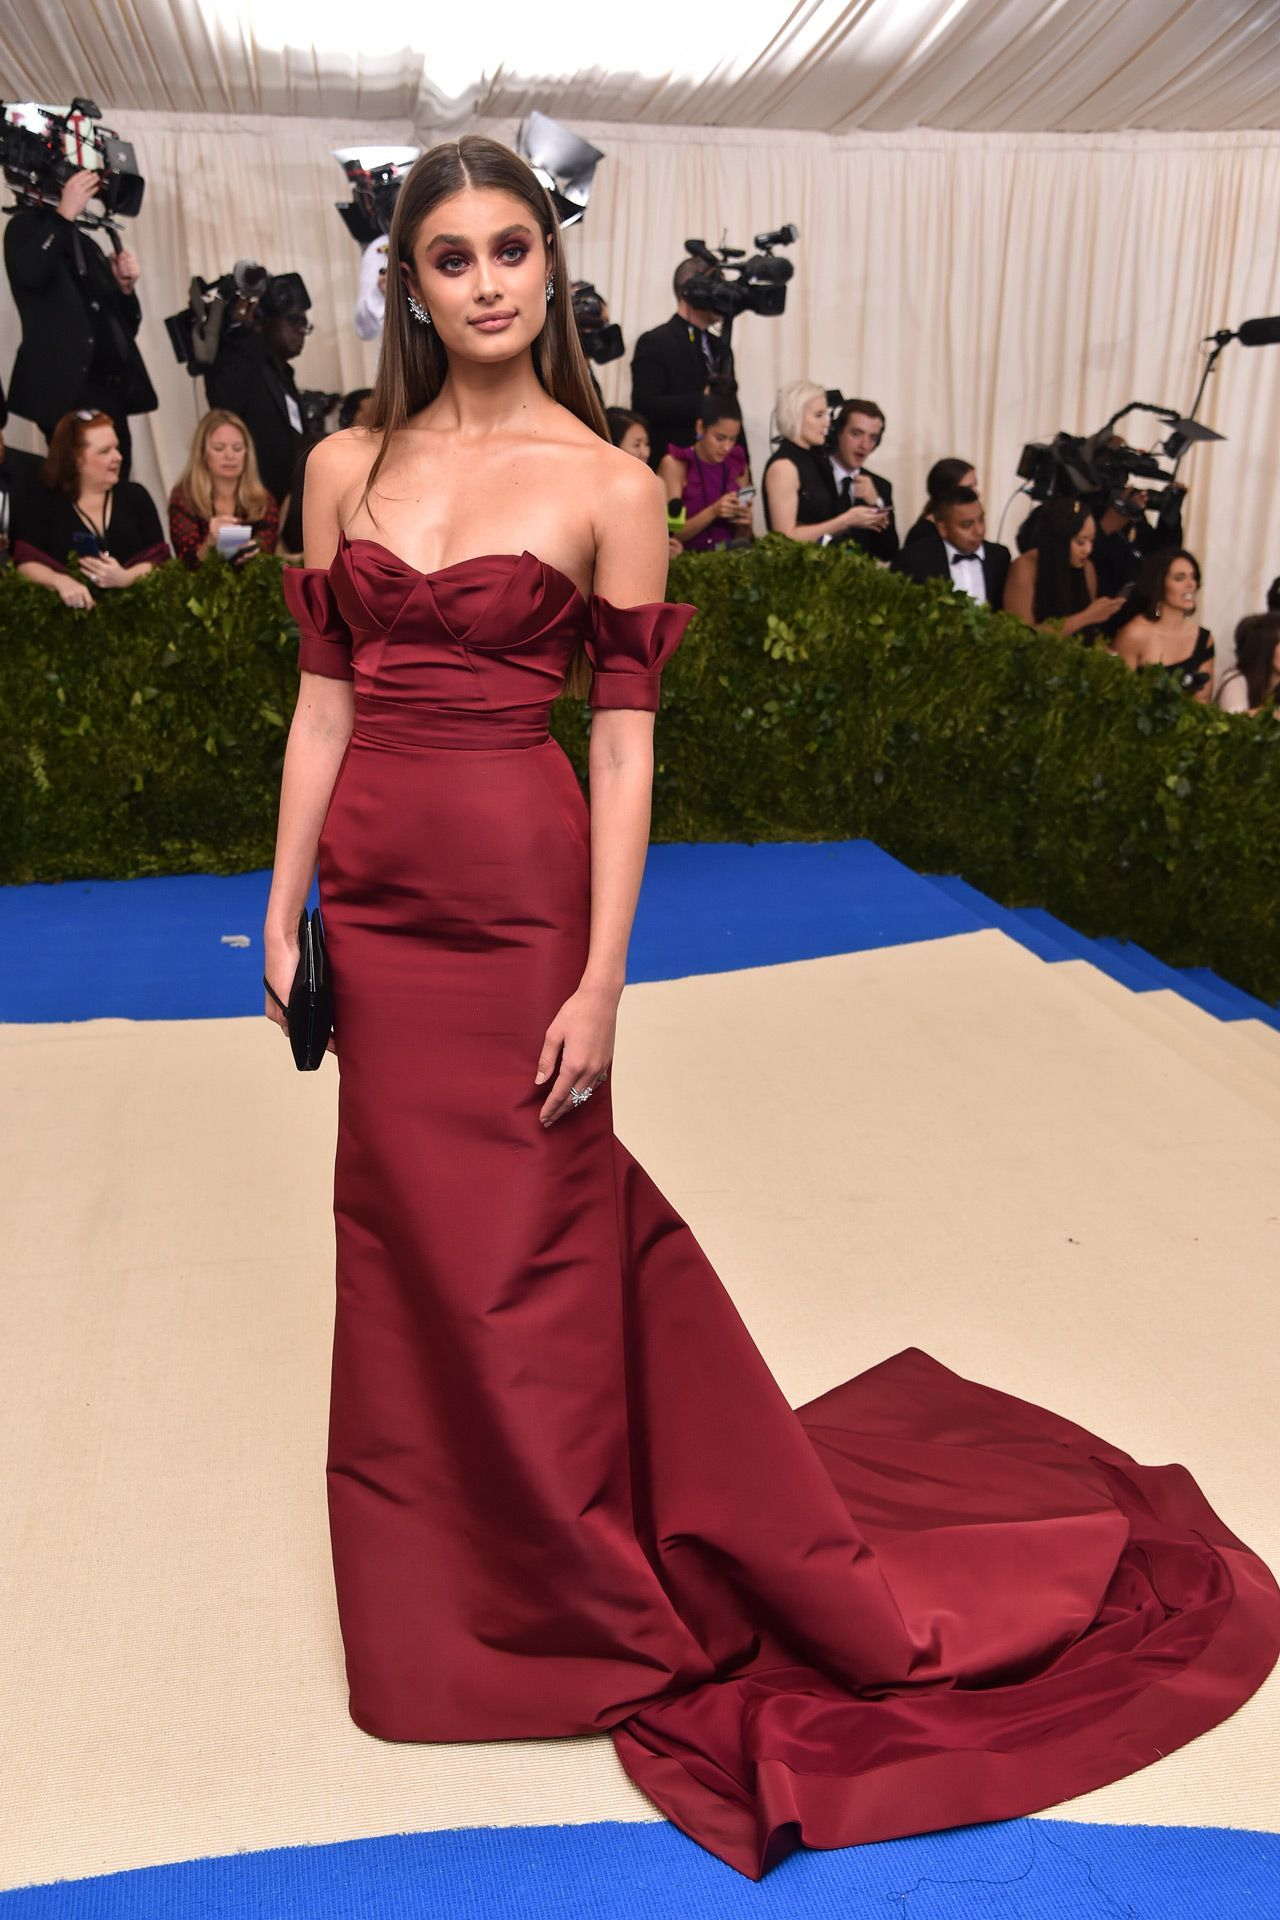 Lo lo lord and taylor party dresses - See The Met Gala 2017 Dresses On Vogue Don T Miss All The Met Gala 2017 Red Carpet Dresses As They Arrive From Rihanna And Beyonce To Katy Perry And Blake